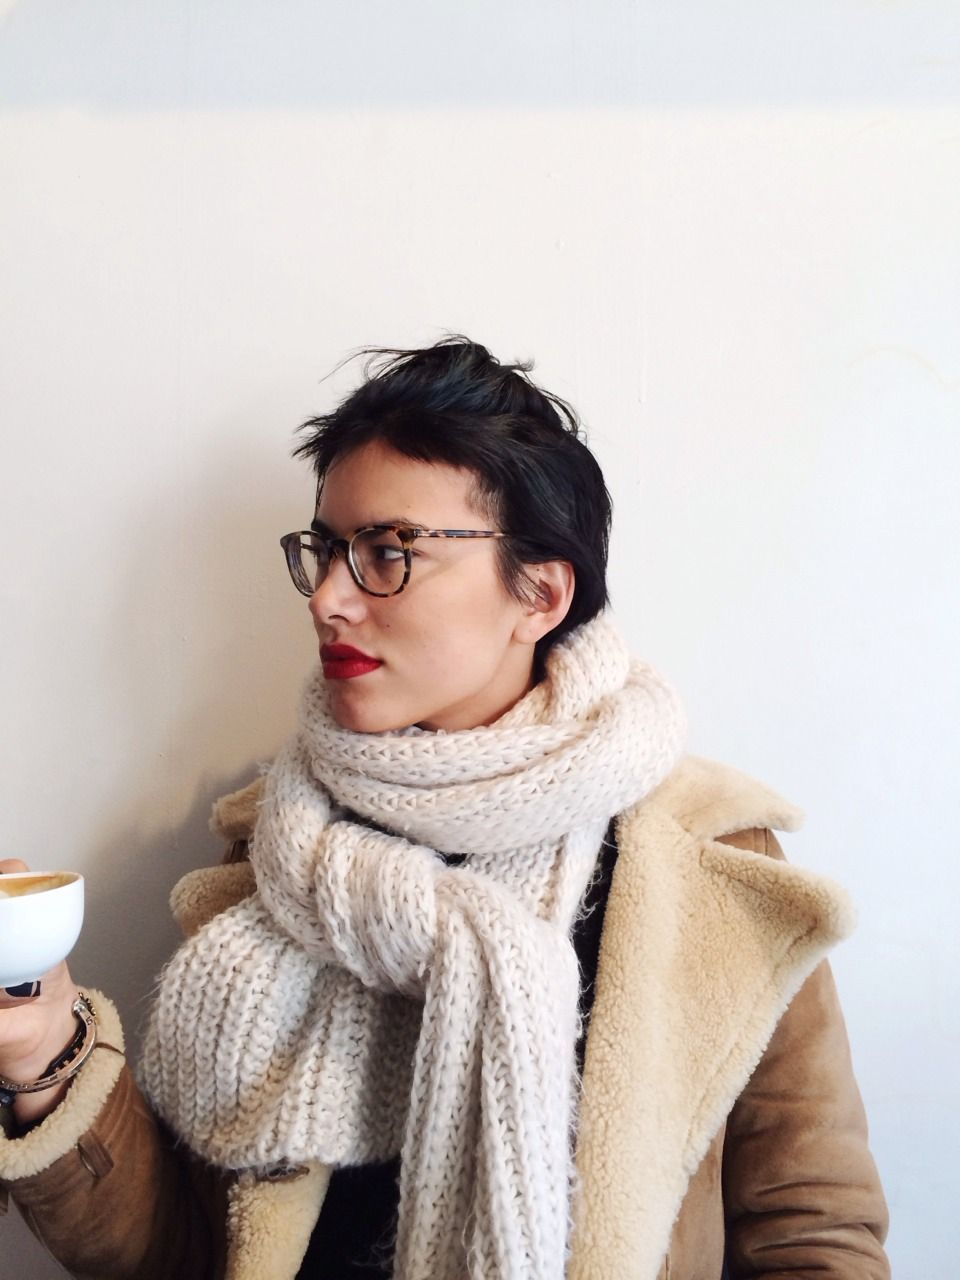 Durand | Camilla, Tortoise and Warby parker